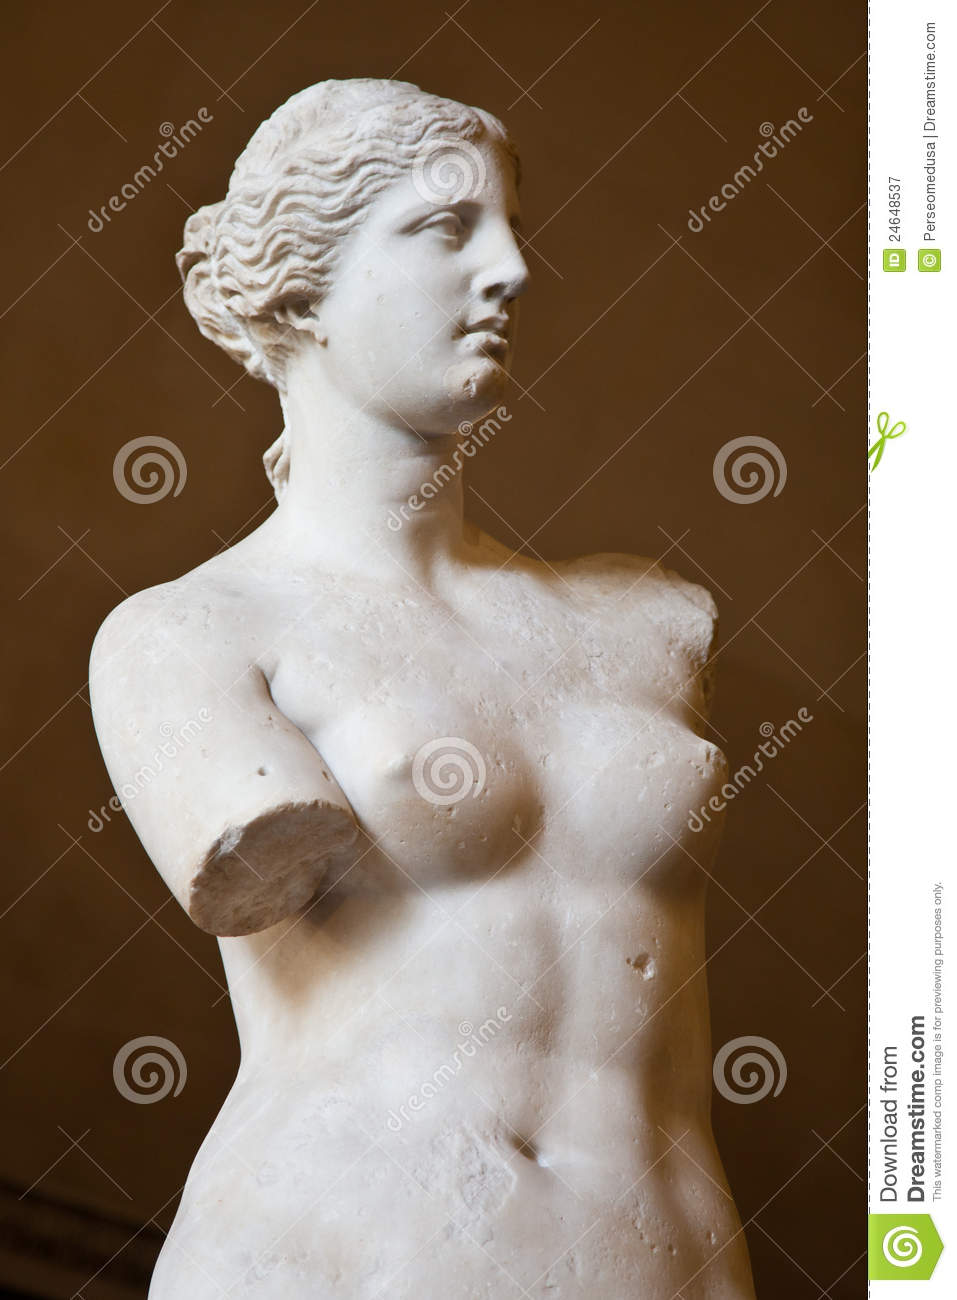 venus de milo reconstructionvenus de milo tmnt, venus de milo statue, venus de milo 3d model, venus de milo sculpture, venus de milo de jalea, venus de milo painting, venus de milo arms, venus de milo stl, venus de milo papercraft, venus de milo description, venus de milo analysis, venus de milo breast size, venus de milo louvre, venus de milo 3d model free, venus de milo wikipedia, venus de milo tmnt 2012, venus de milo pronunciation, venus de milo model, venus de milo miles davis, venus de milo reconstruction